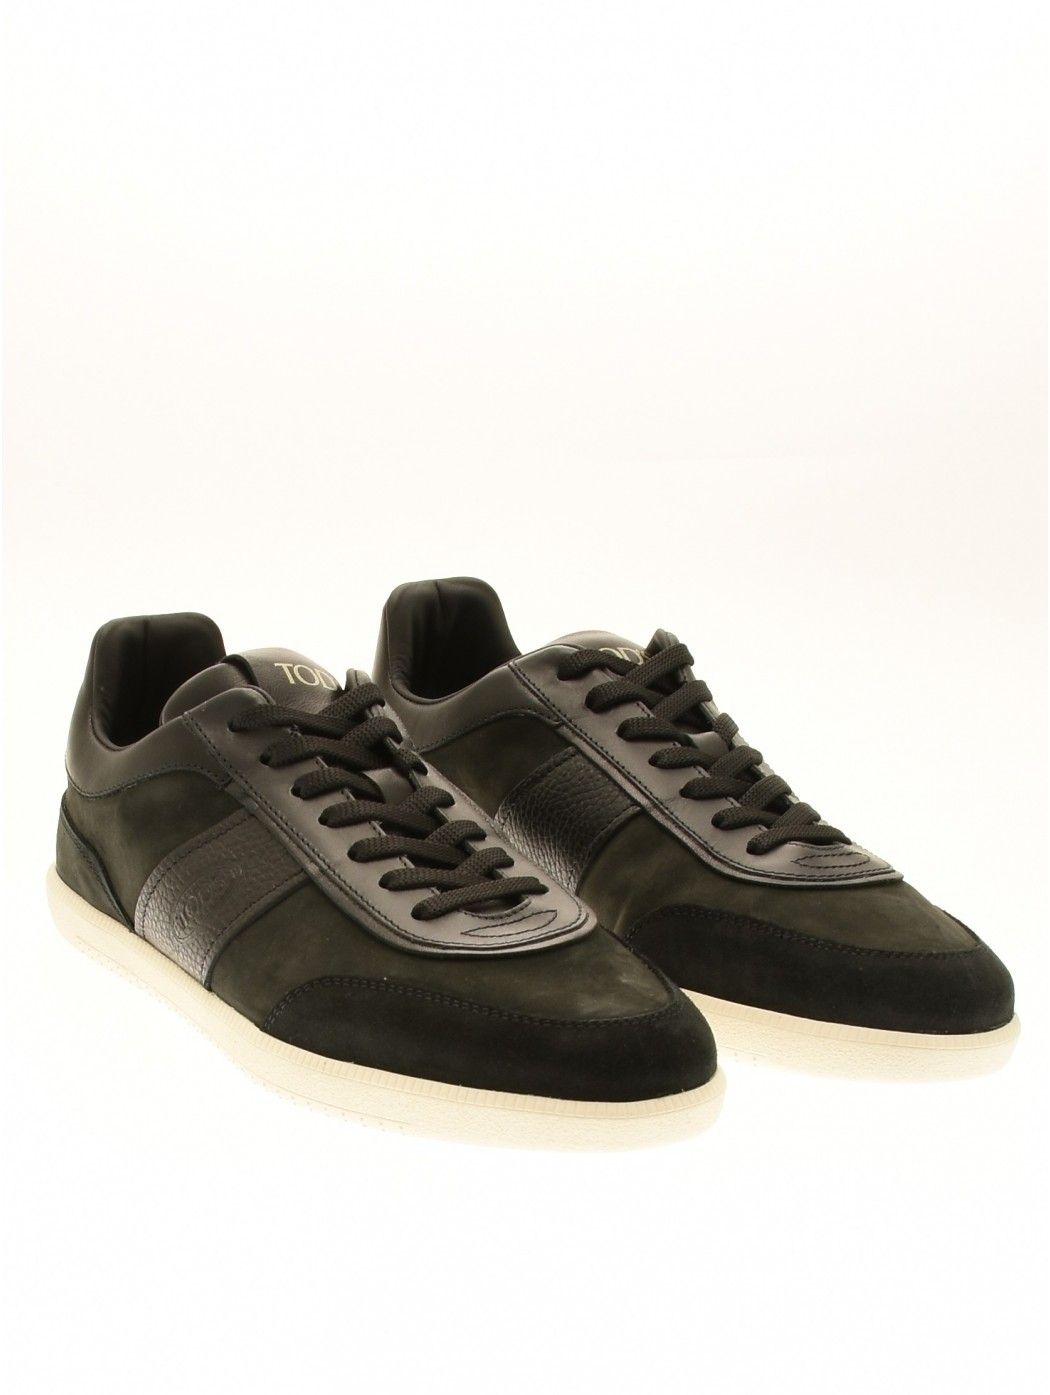 SNEAKERS TODS XXM68C0CP30OV5 B999